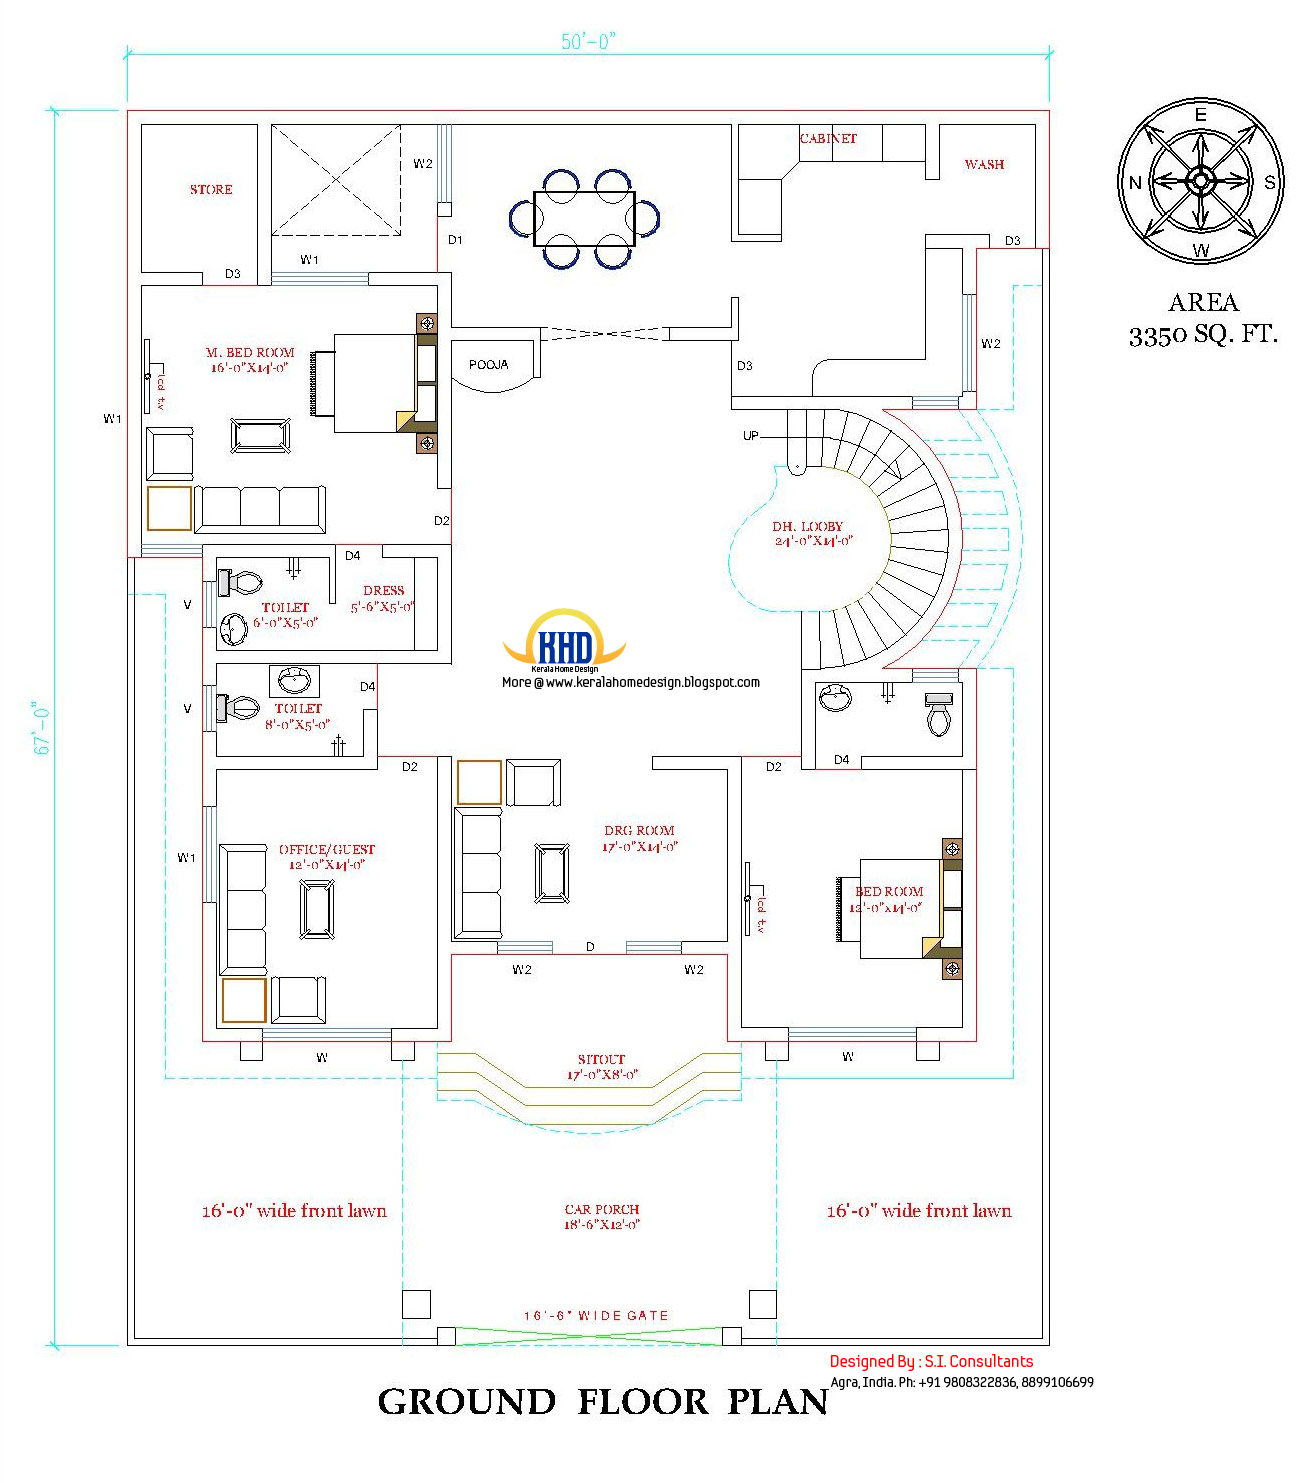 Ground floor plan of beautiful double story house - 3350 Sq. Ft. (311 ...